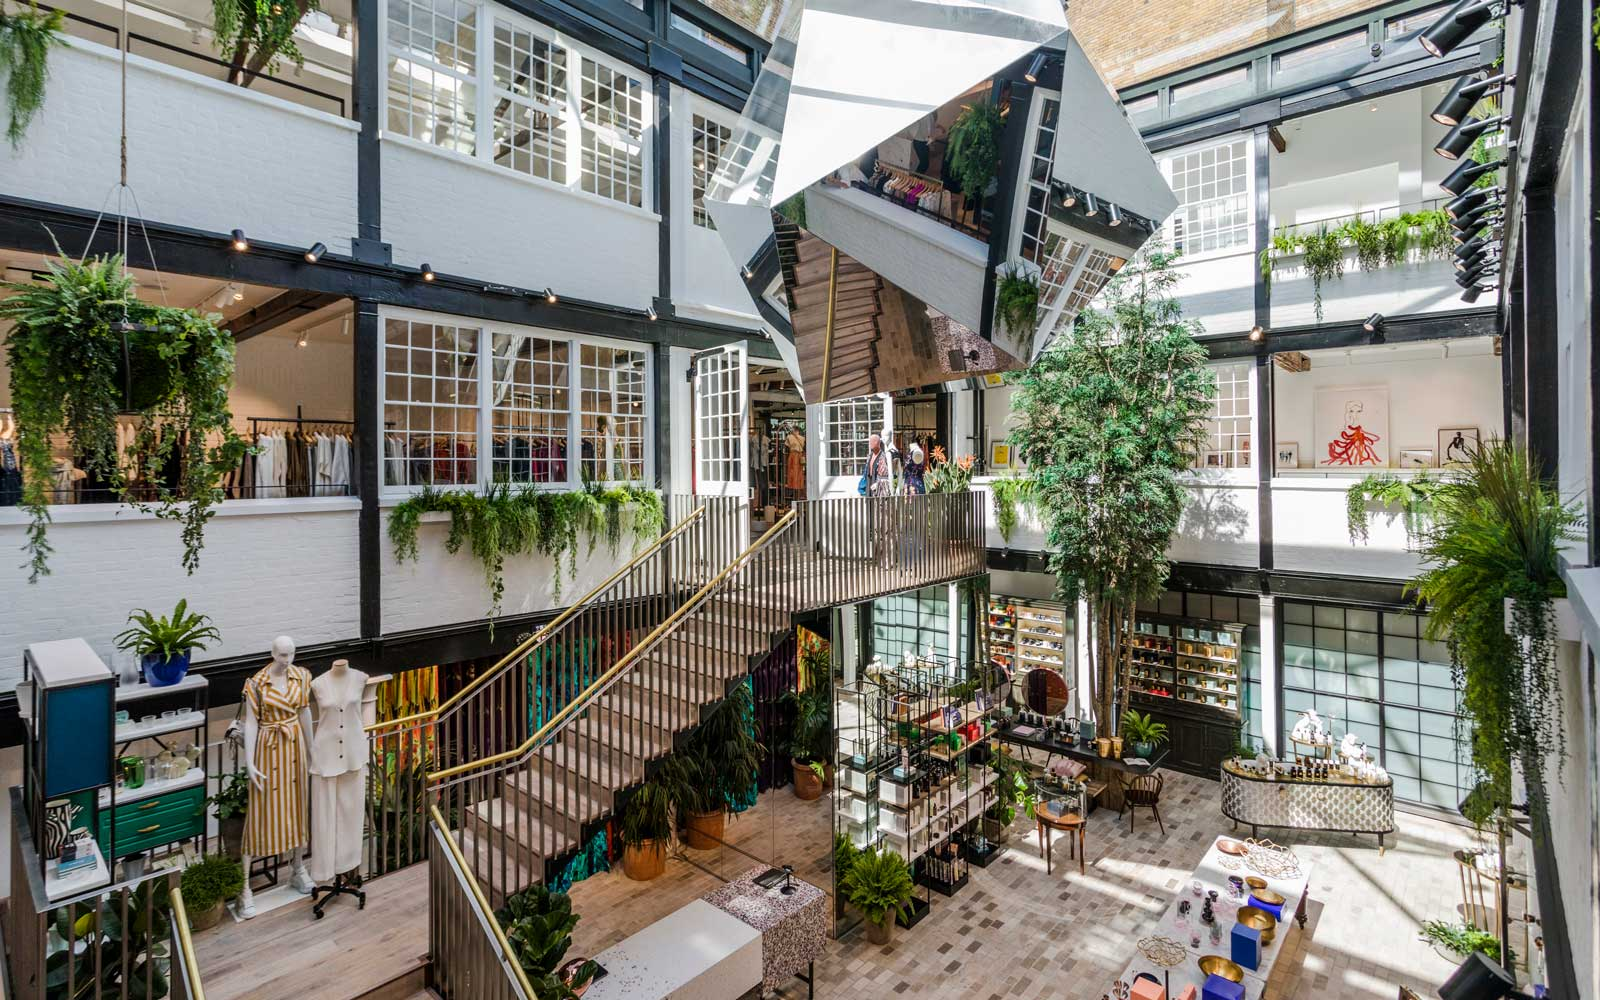 Where to Shop in London? Covent Garden